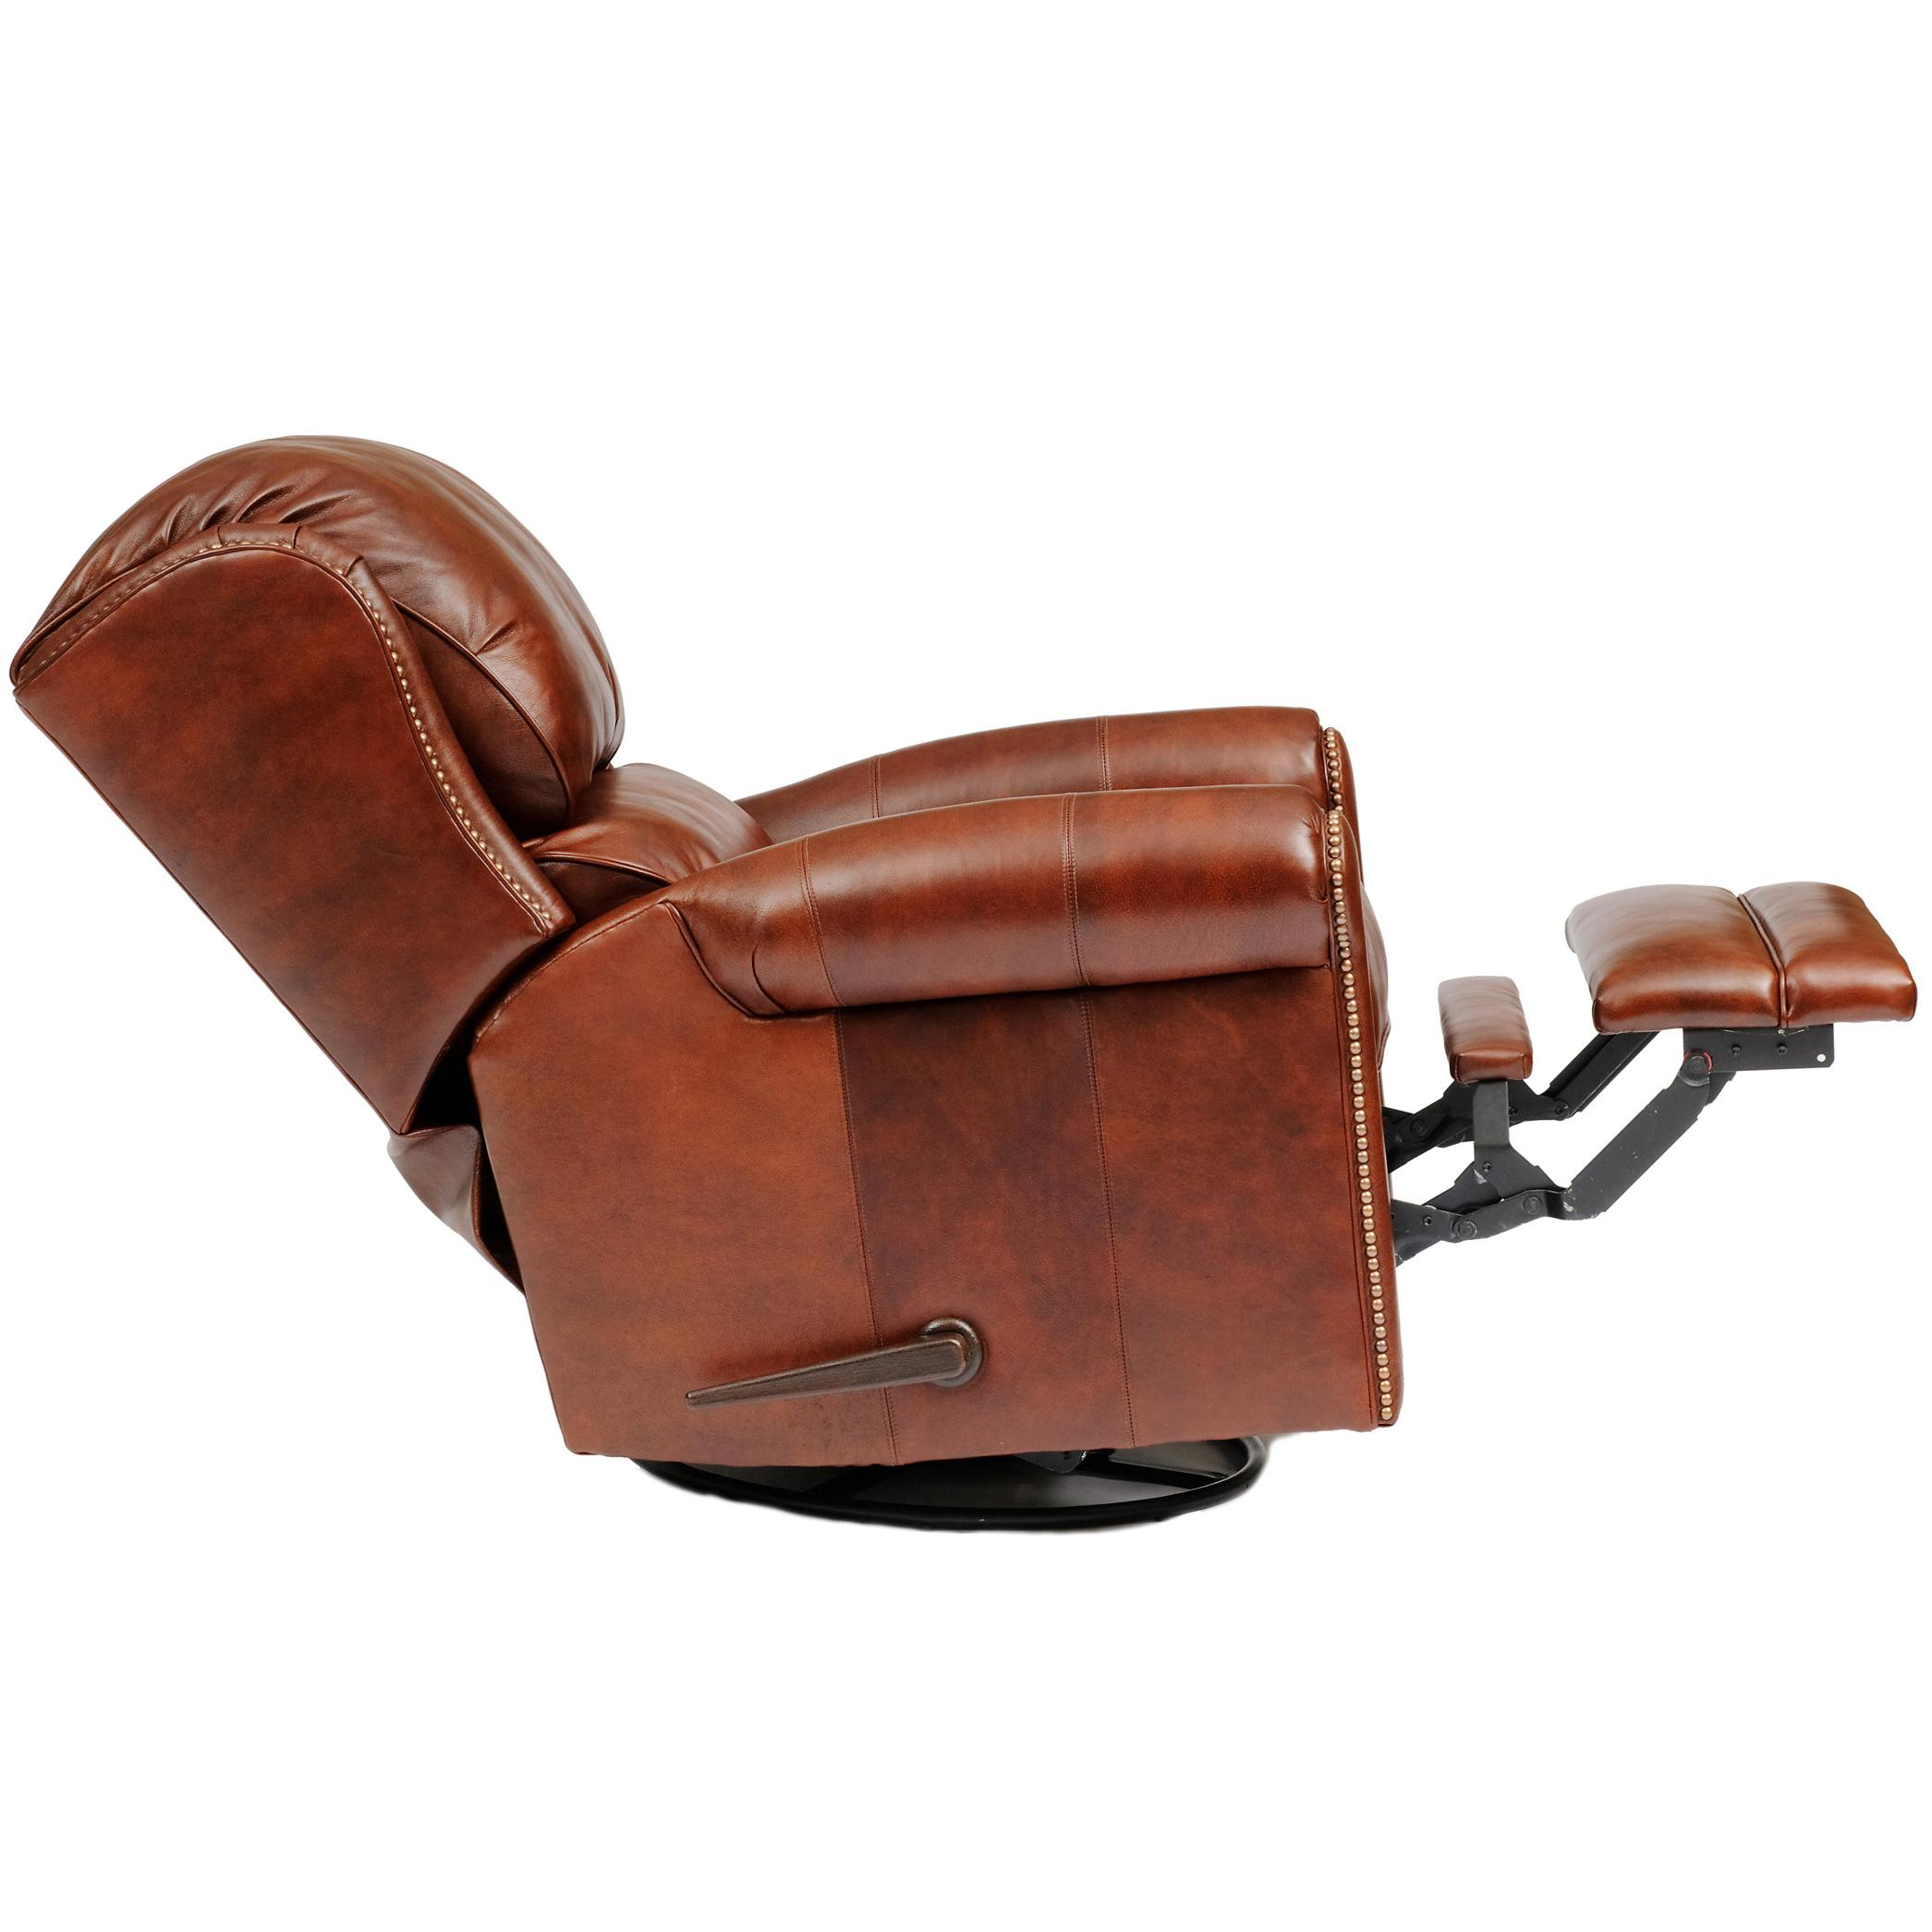 720l Casual Leather Motorized Reclining Chair By Smith Brothers Wolf Furniture